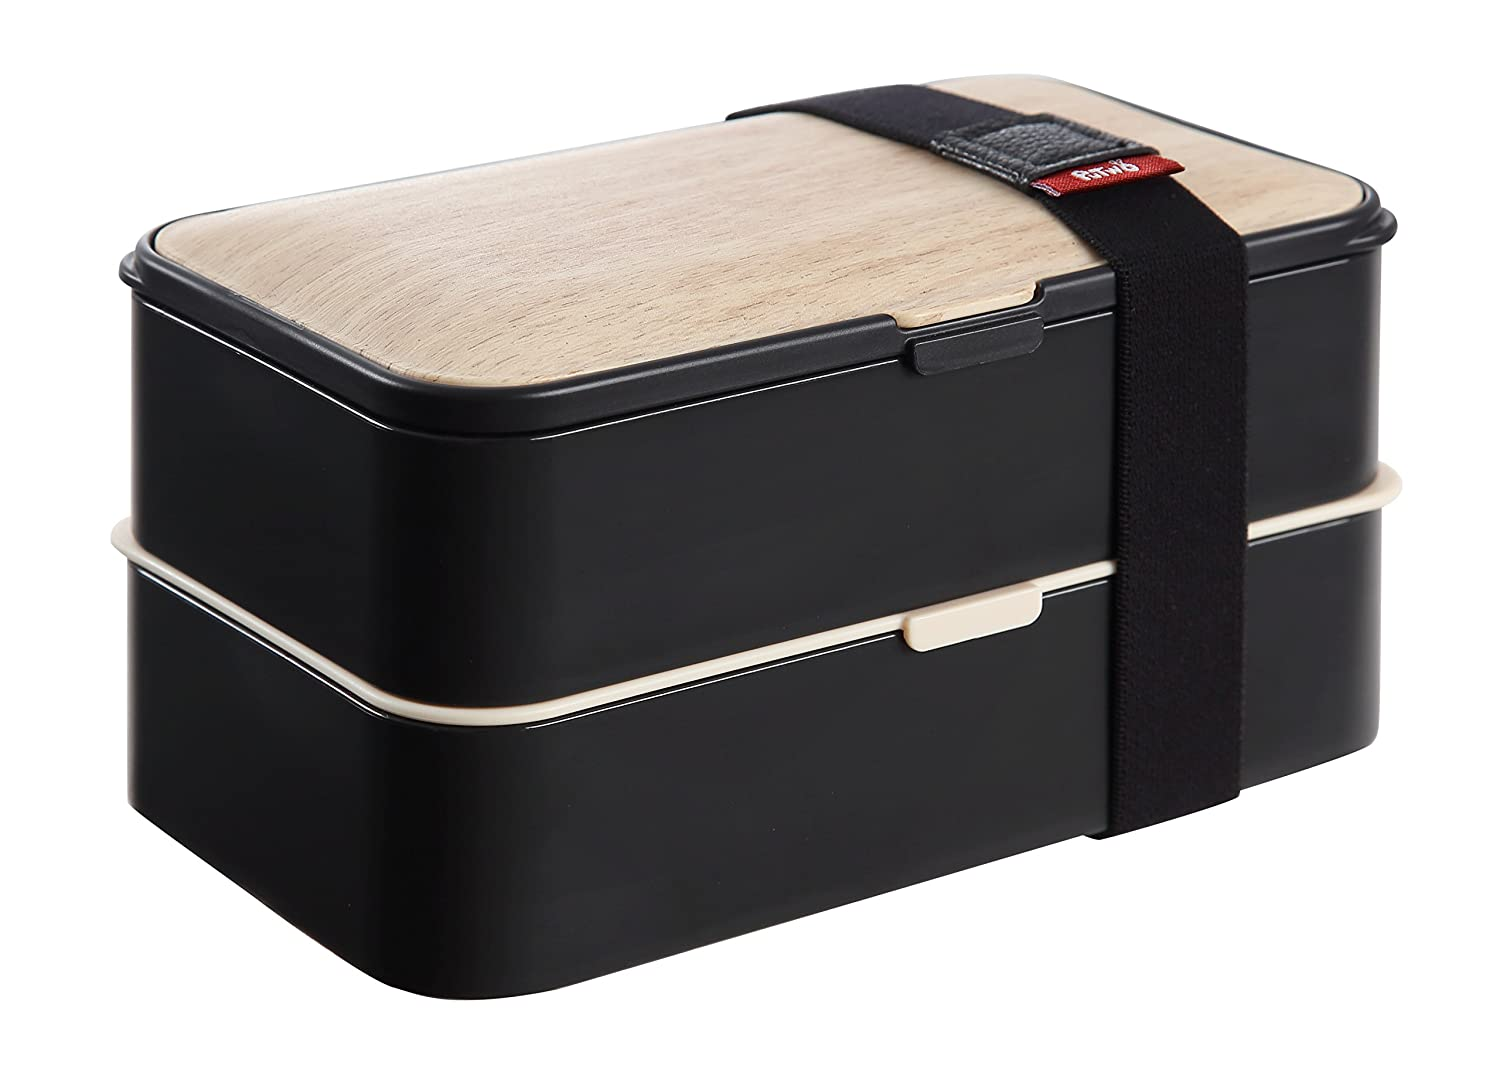 PuTwo Bento Box Leakproof 2 Tier with Cutlery Lunch Box Microwave BPA Free All-in-One, Bamboo Black 713262646229